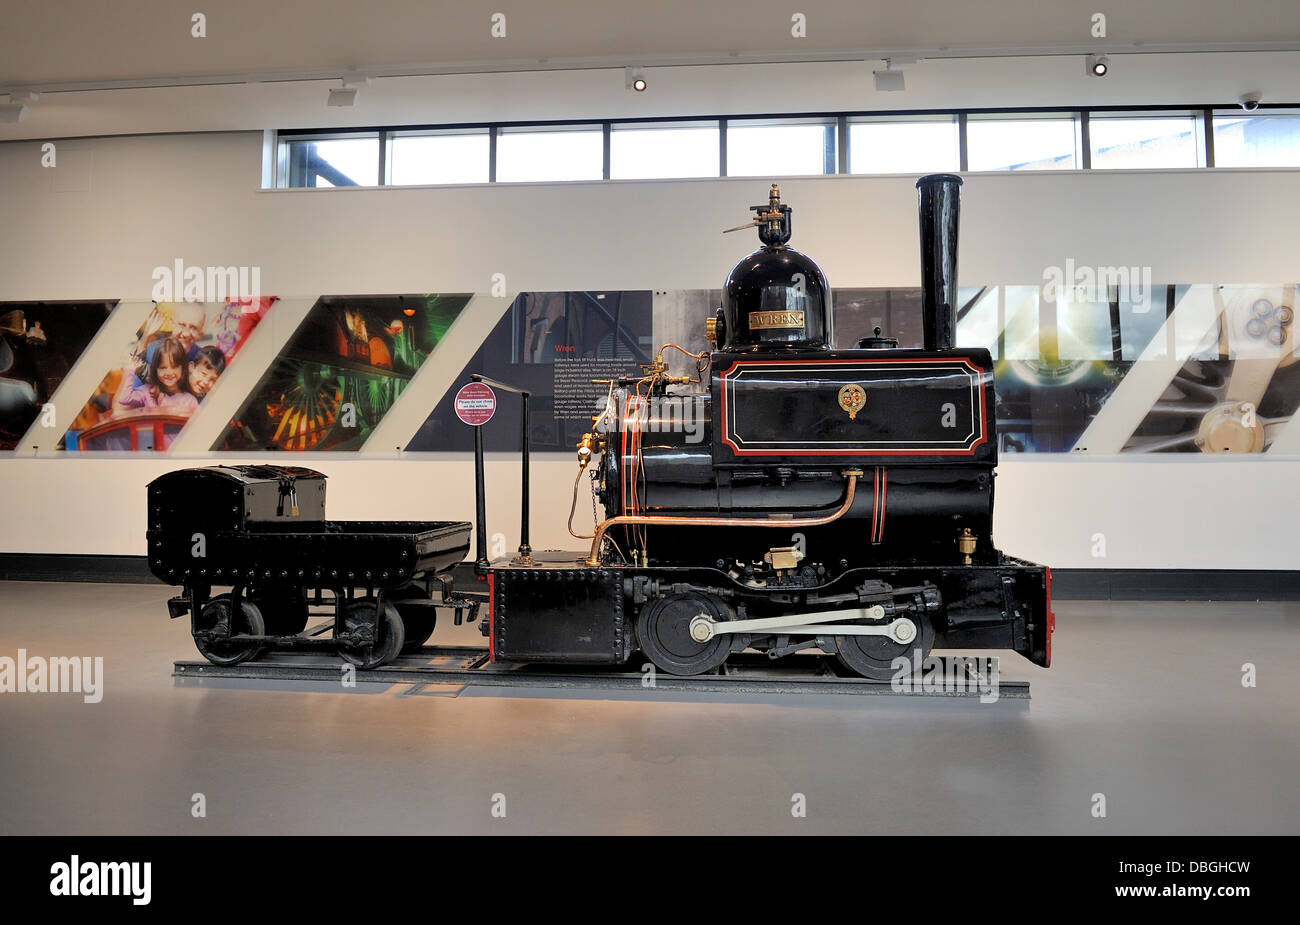 Steam locomotive Lancashire & Yorkshire Railway,  'Wren' built at Horwich Works in 1887 in the National - Stock Image